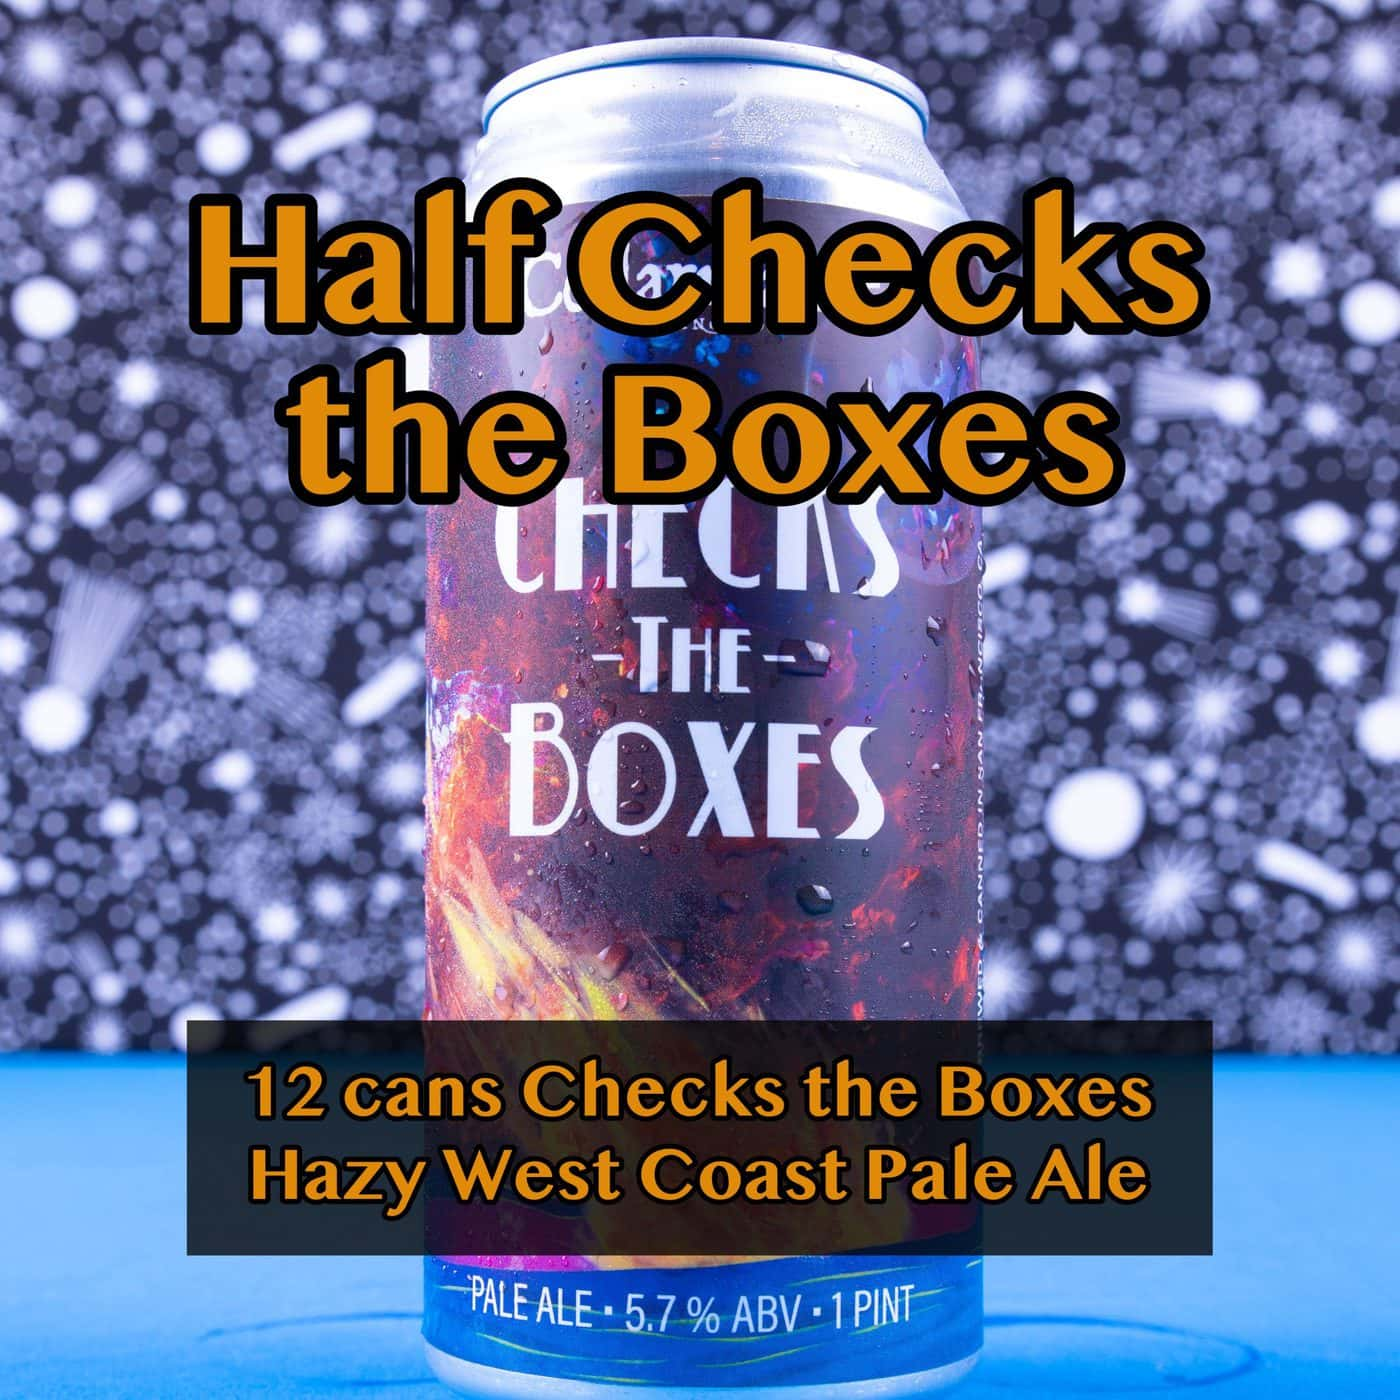 HALF CASE 12 CANS Checks The Boxes Pale Ale… SHIPPING Out On WEDNESDAY 12/2 For NEXT DAY Delivery*